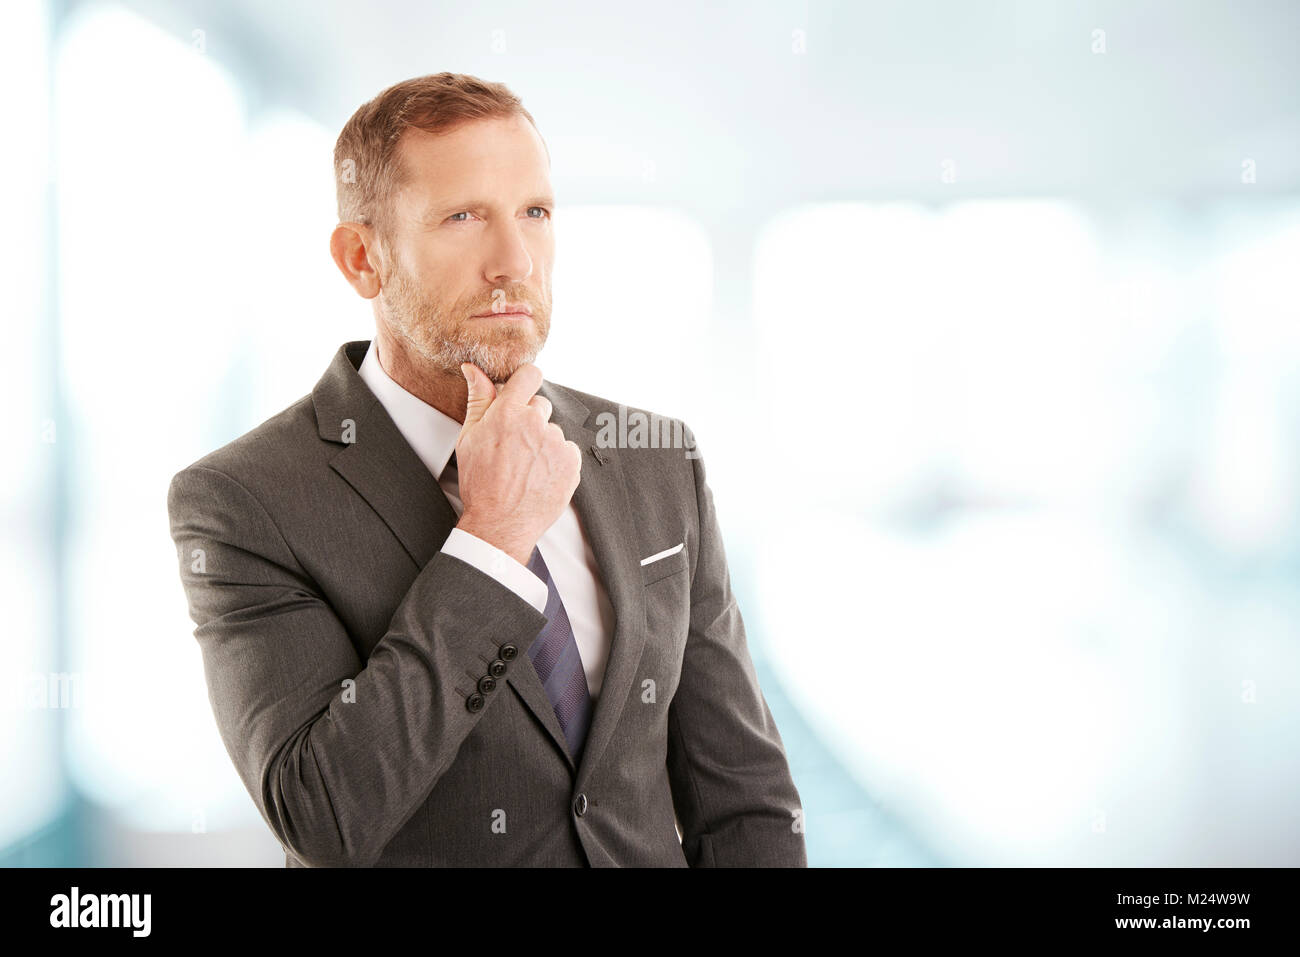 Middle aged businessman wearing suit while standing at the office and seemd deep in thought. Professional man looking - Stock Image